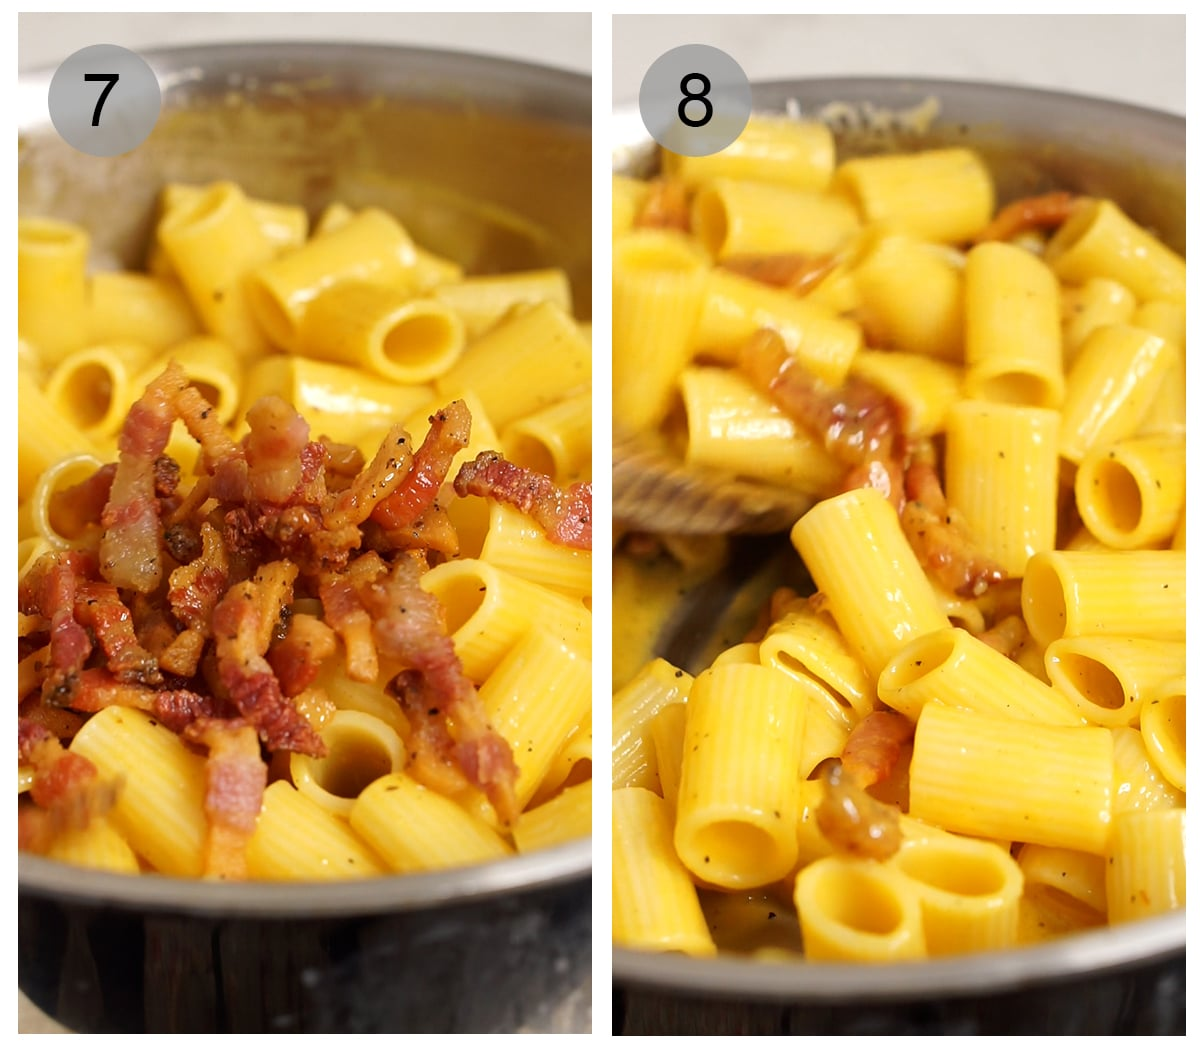 Step by step photos on how to make an authentic carbonara (#7-8)